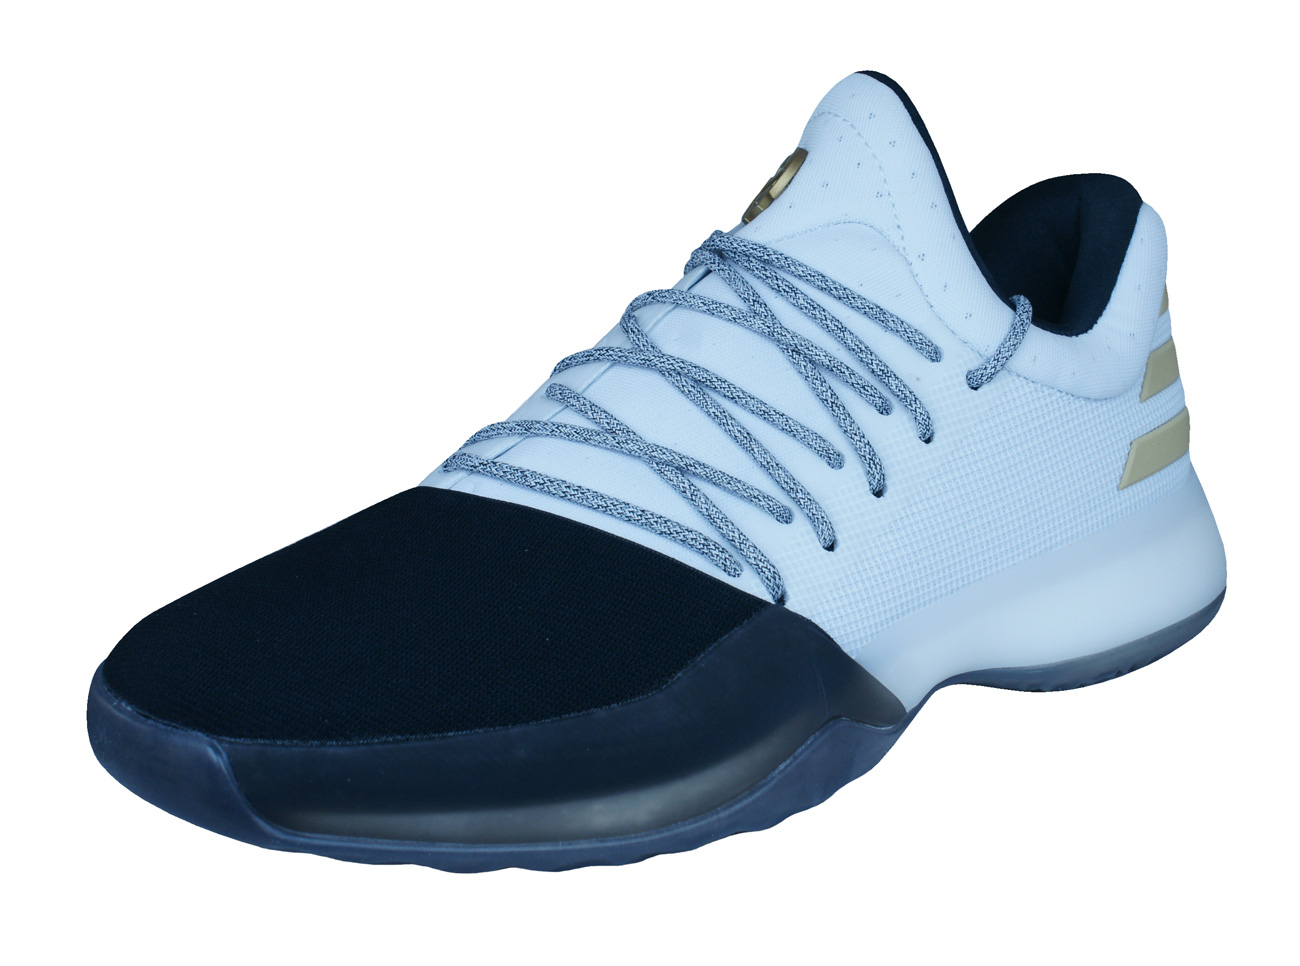 57e2599ff80e98 adidas Harden Vol 1 Mens Basketball Trainers   Shoes - White at ...